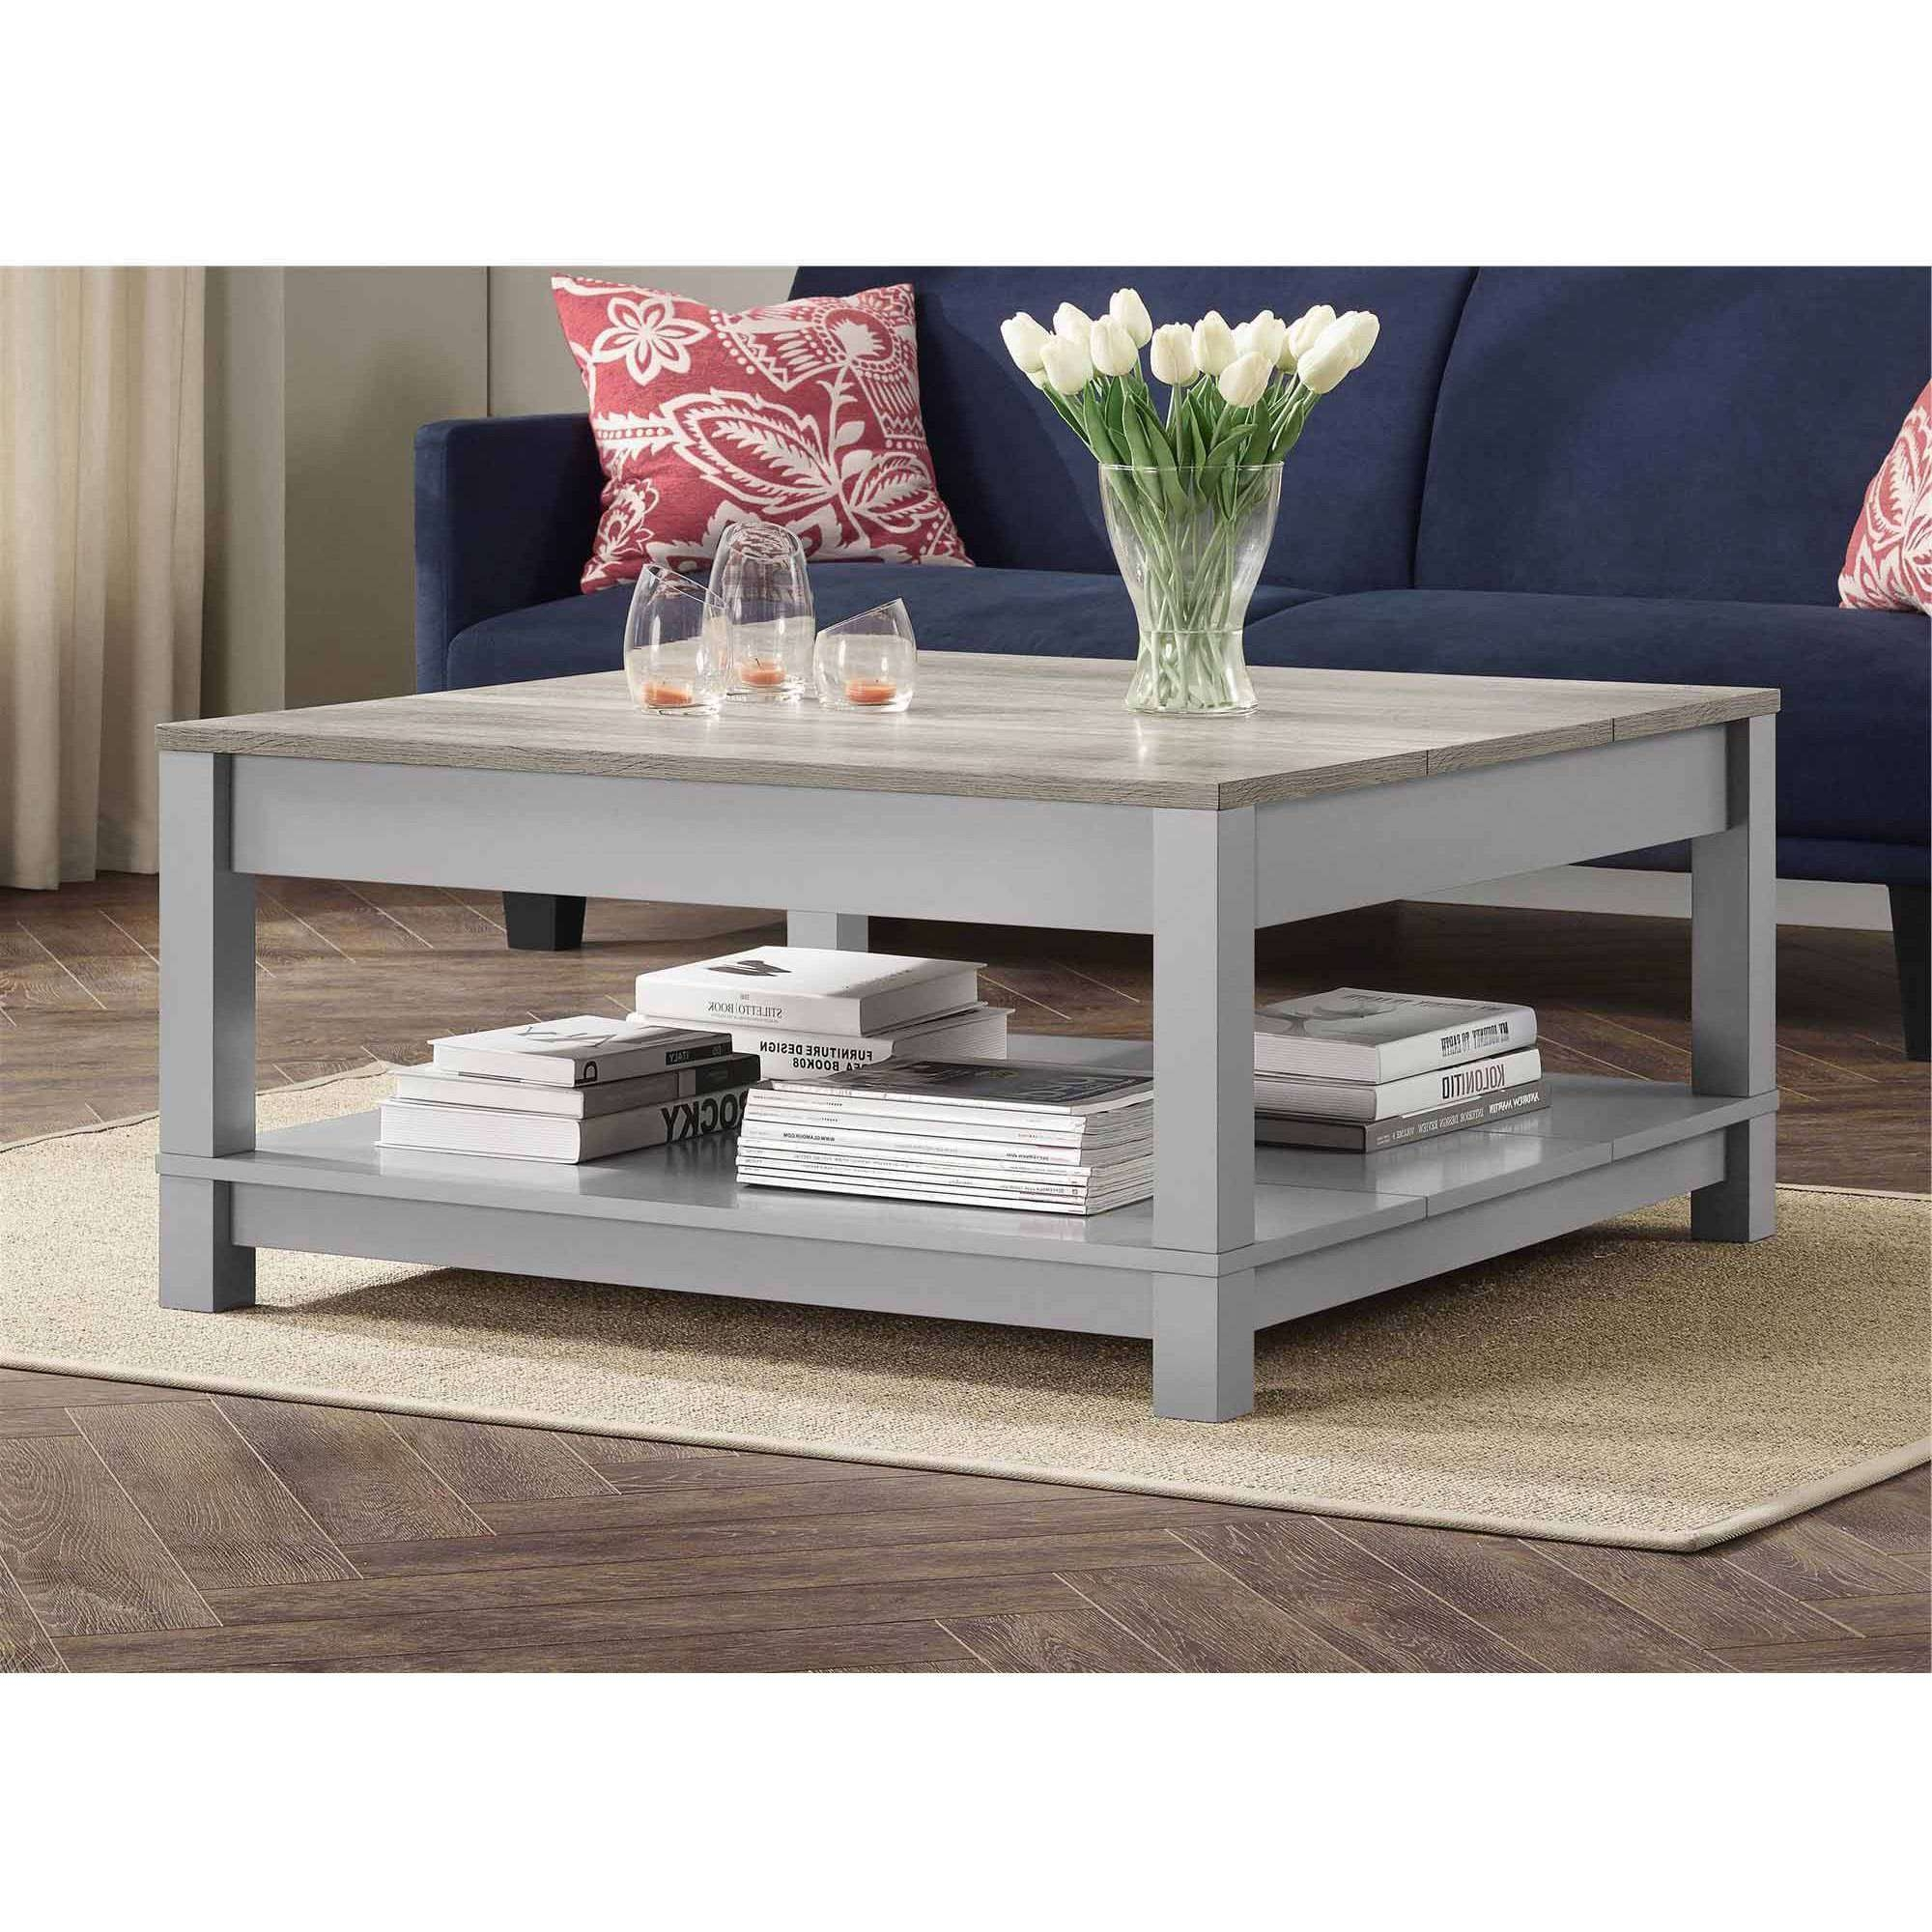 Better Homes And Gardens Langley Bay Coffee Table, Multiple Colors With Well Known Space Coffee Tables (View 14 of 20)